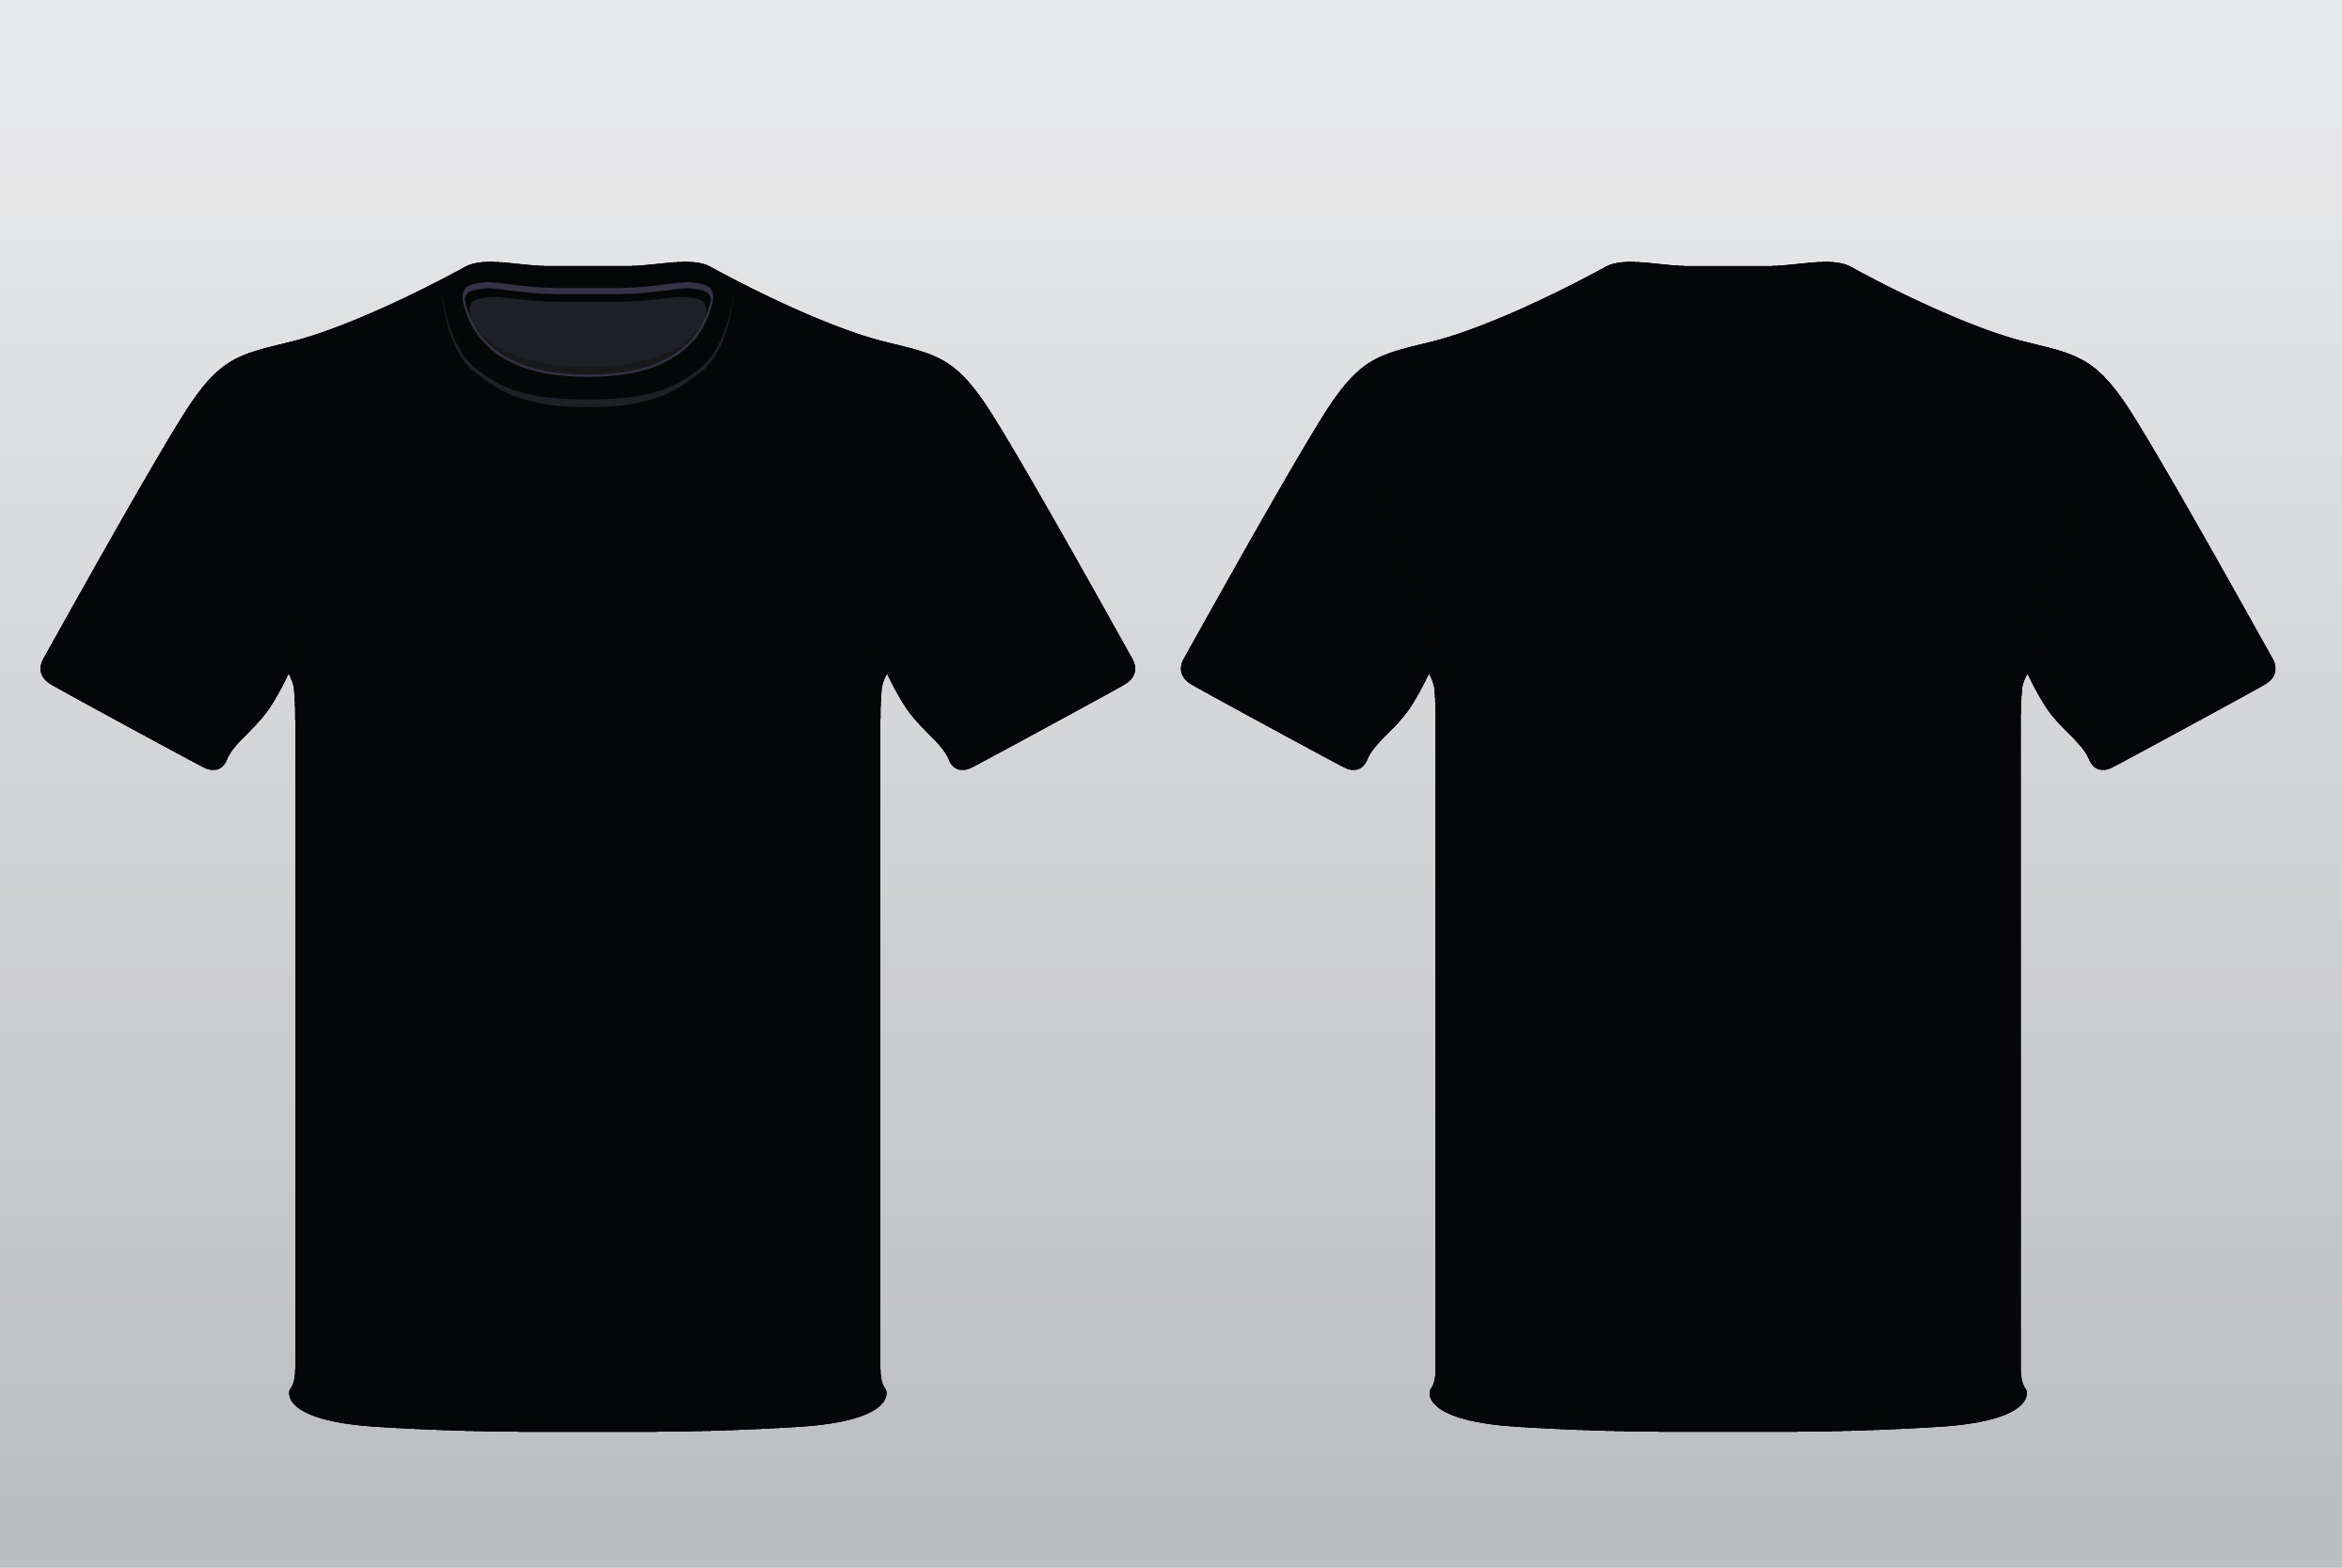 image relating to Printable T Shirt Template named All in excess of Print T-blouse Structure Templates